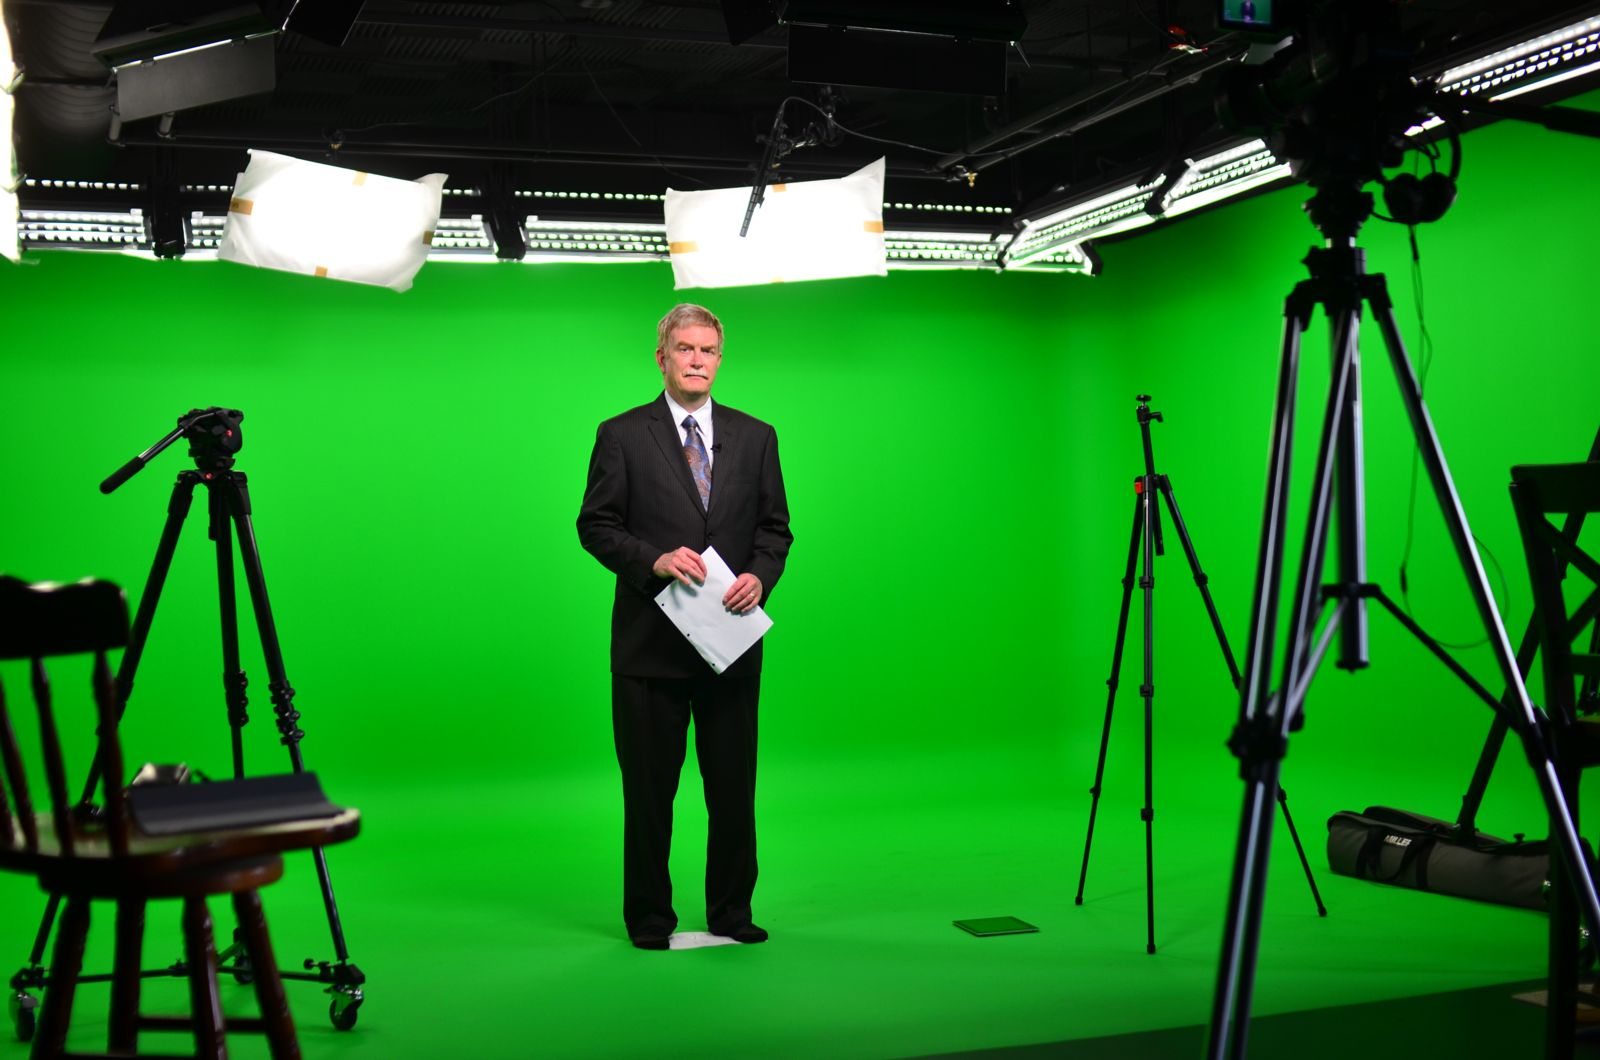 Green screen studio in Fairfax, VA